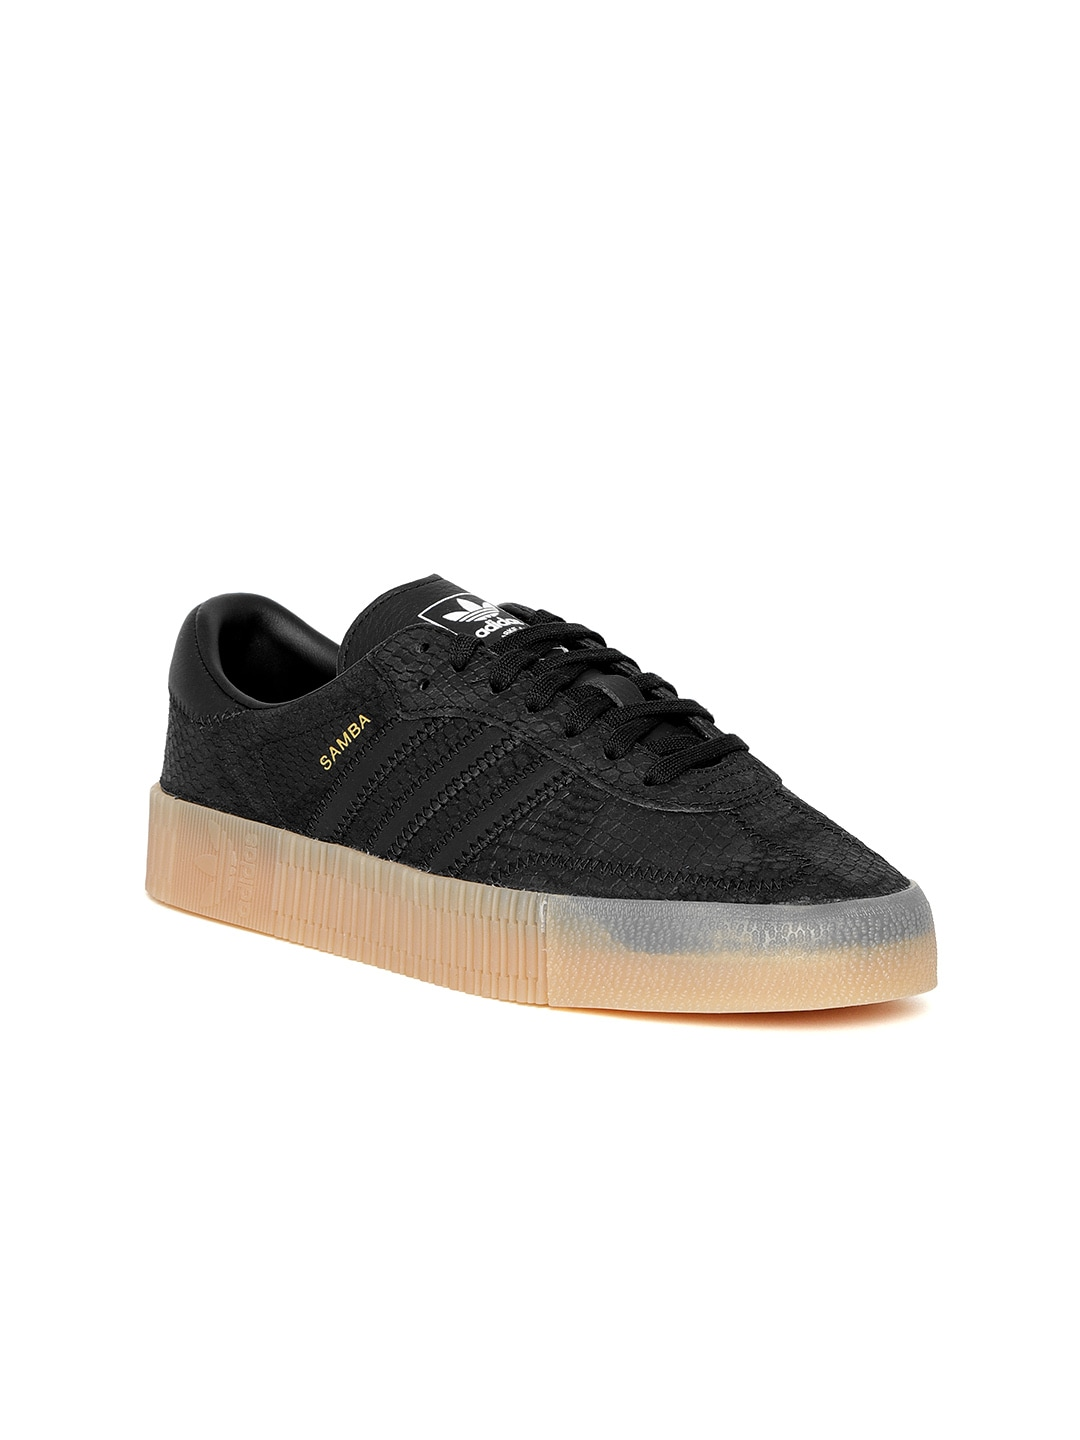 31df63e5cc3d82 Buy Adidas Originals Women Black SAMBAROSE Leather Sneakers - Casual ...